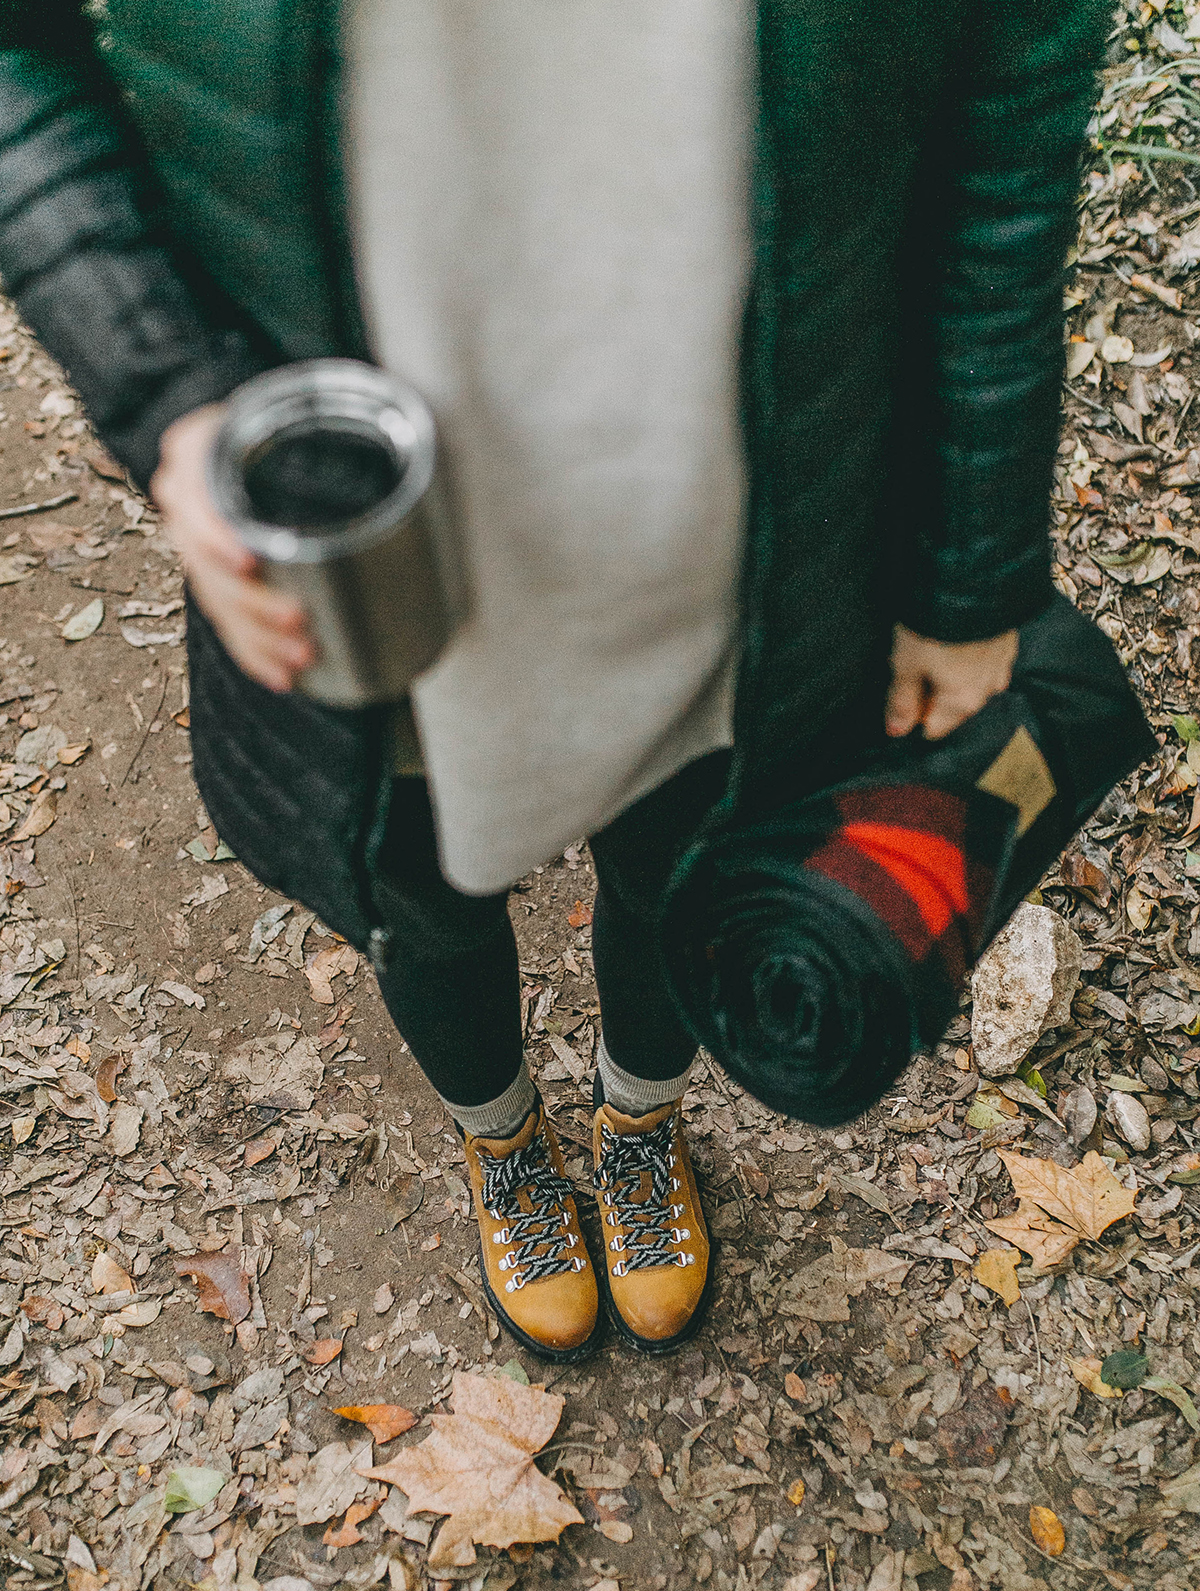 livvyland-blog-olivia-watson-austin-texas-fashion-lifestyle-blogger-greenbelt-fall-patagonia-radalie-parka-sorel-ainsley-boots-hiking-outfit-backcountry-5